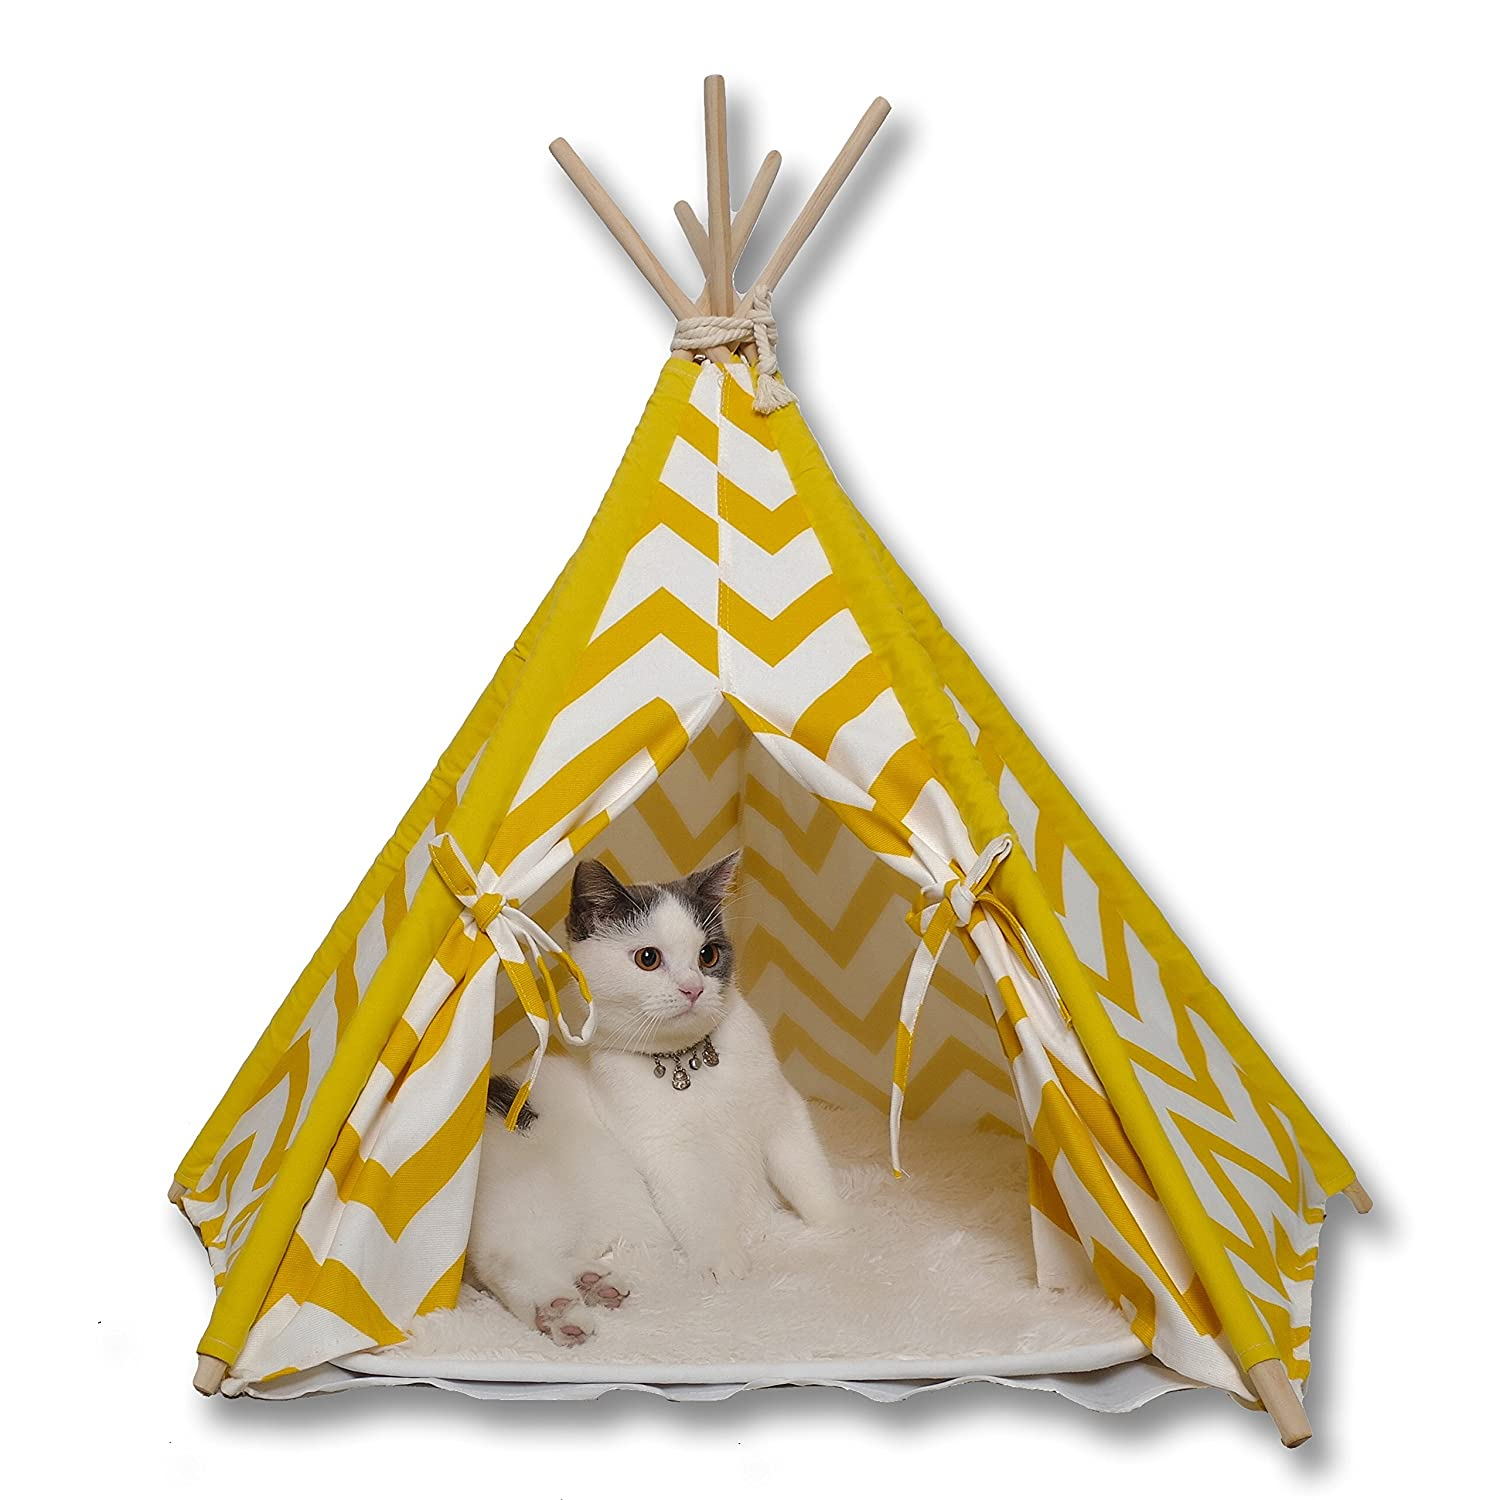 Amazon.com  MY MARKET Yellow Stripe Pet Teepee Indian Tents Wood Canvas Tipi  Pet Supplies  sc 1 st  Amazon.com & Amazon.com : MY MARKET Yellow Stripe Pet Teepee Indian Tents Wood ...